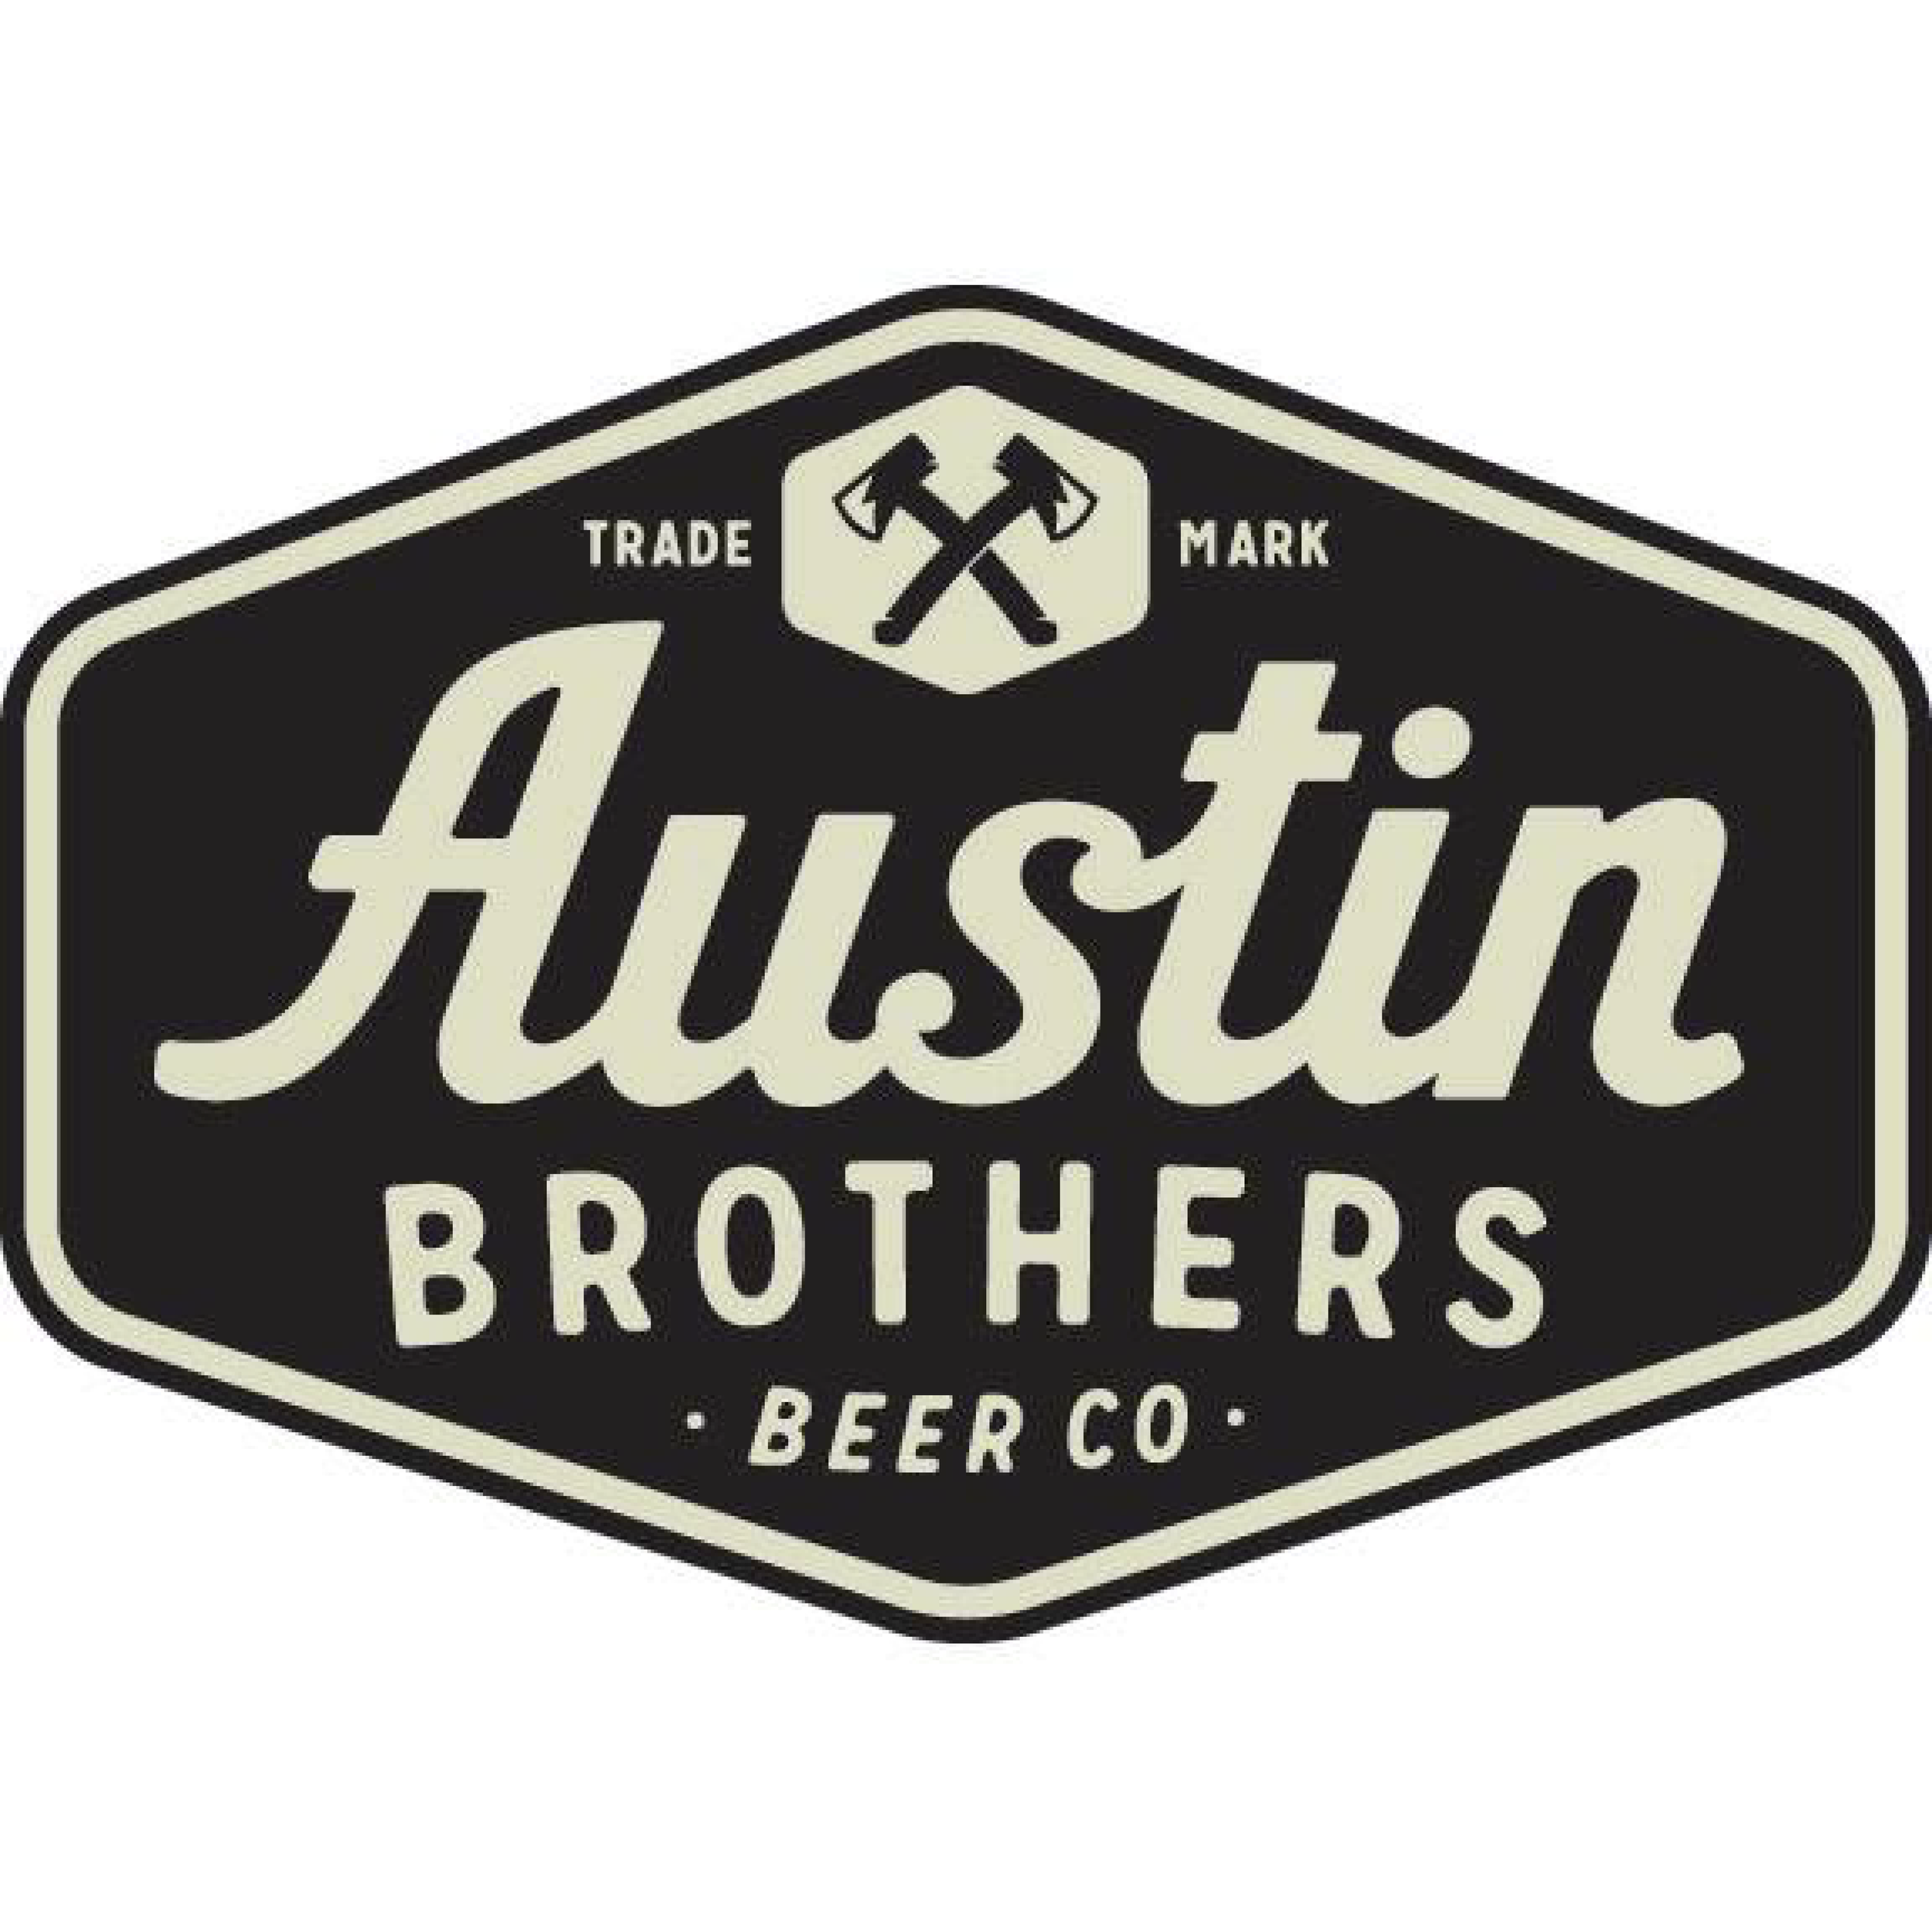 Austin Brothers Beer Company logo. Links to Austin Brothers Beer Company website.